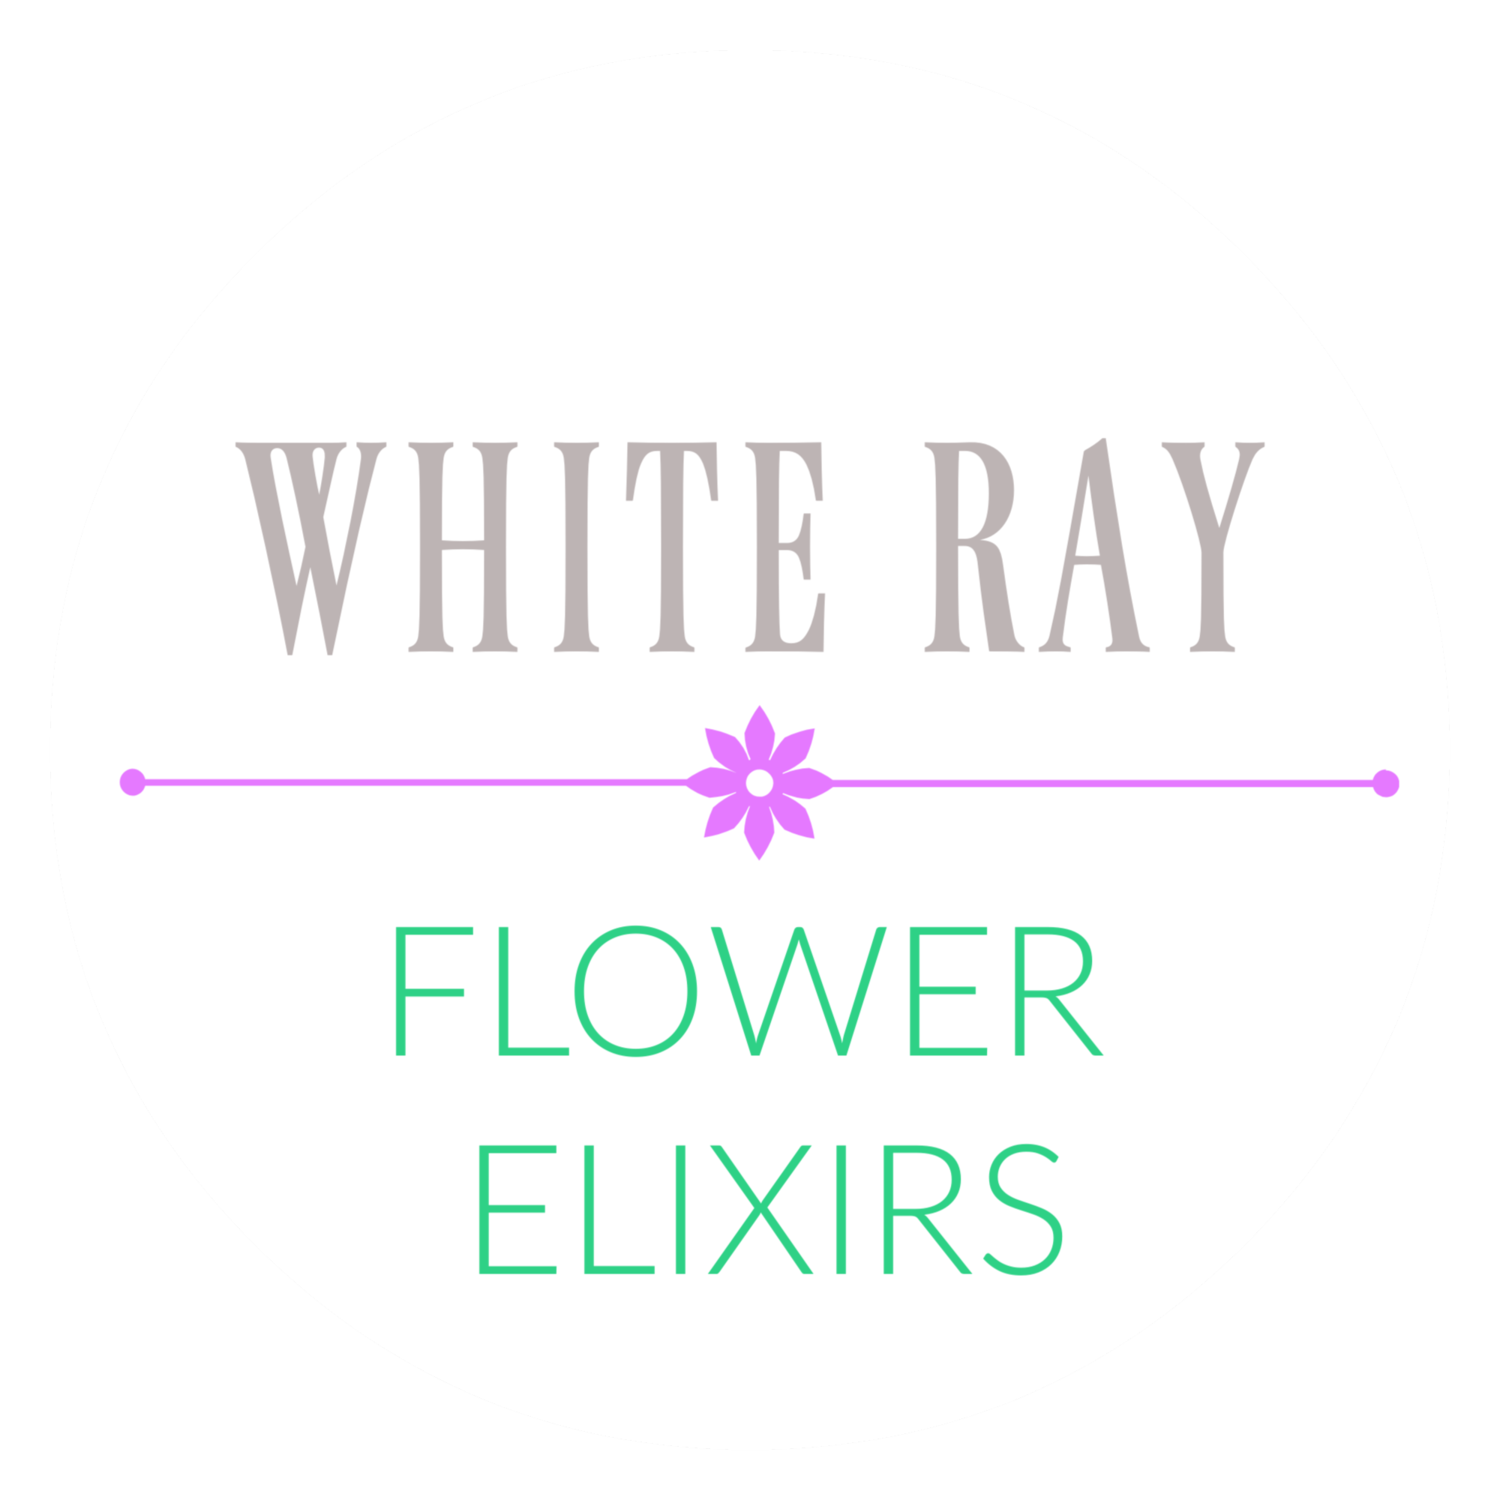 White Ray Flower Elixirs